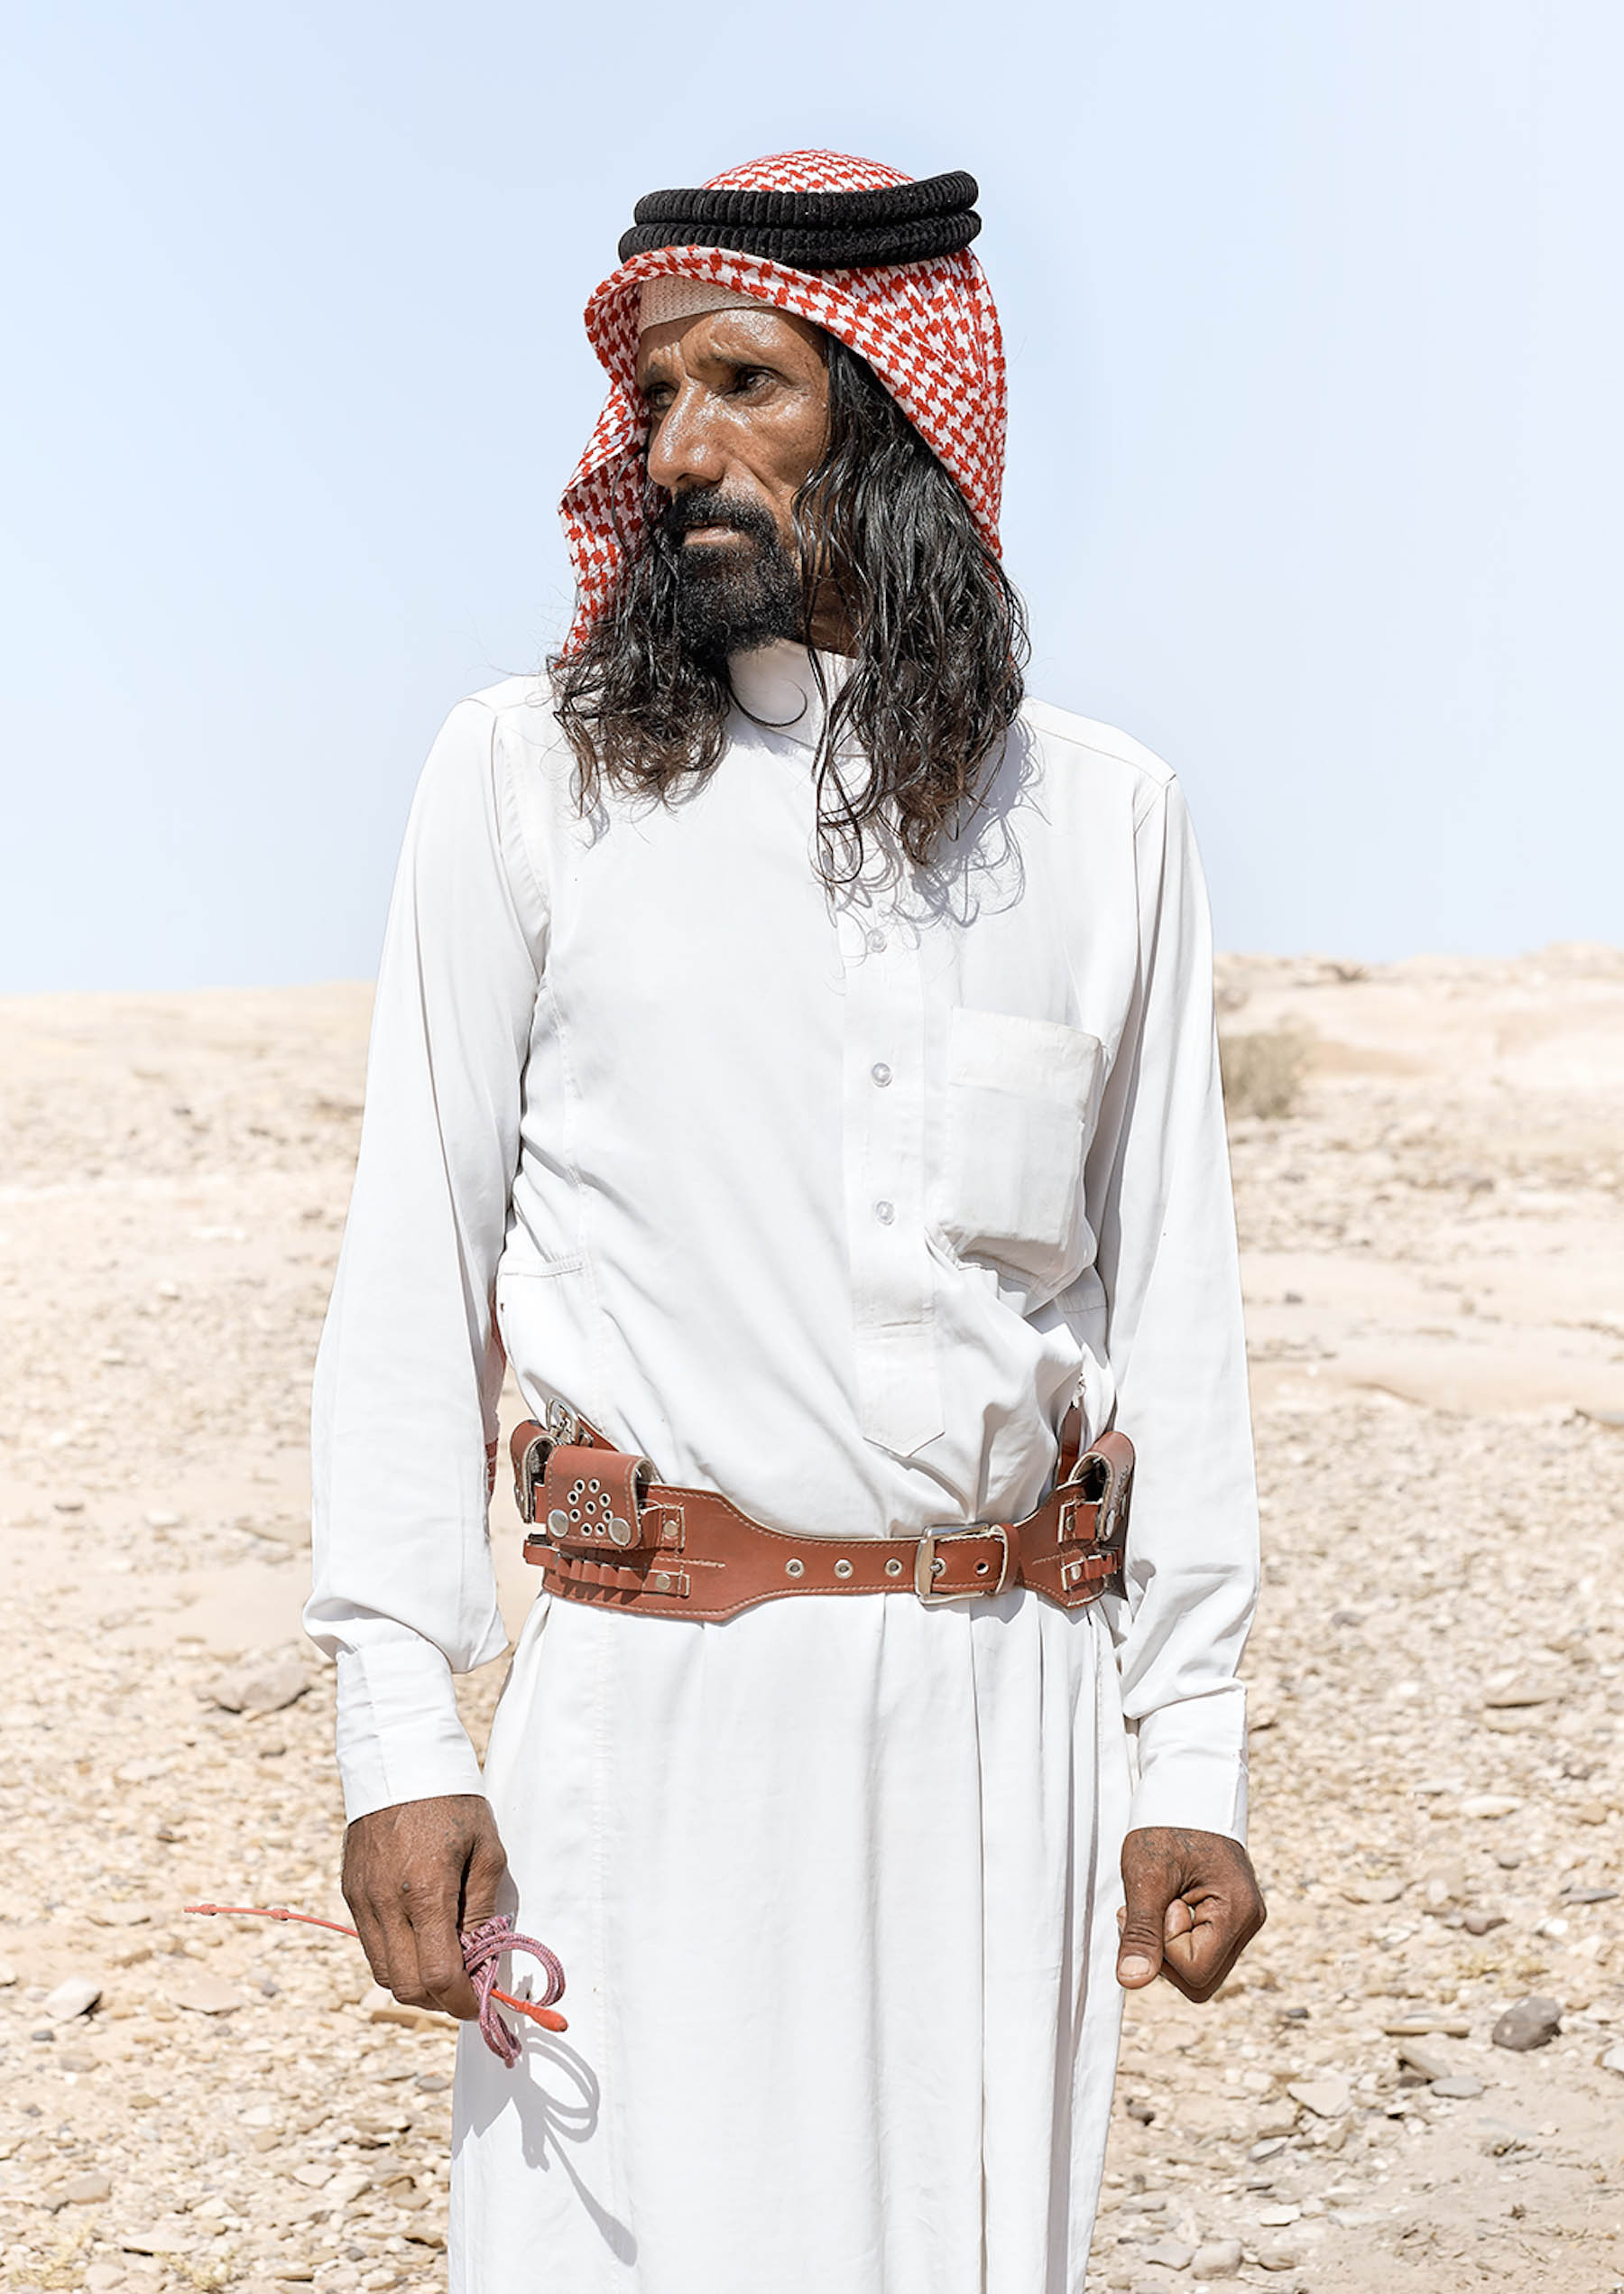 iGNANT-Photography-Zico-ONeill-Middle-East-09